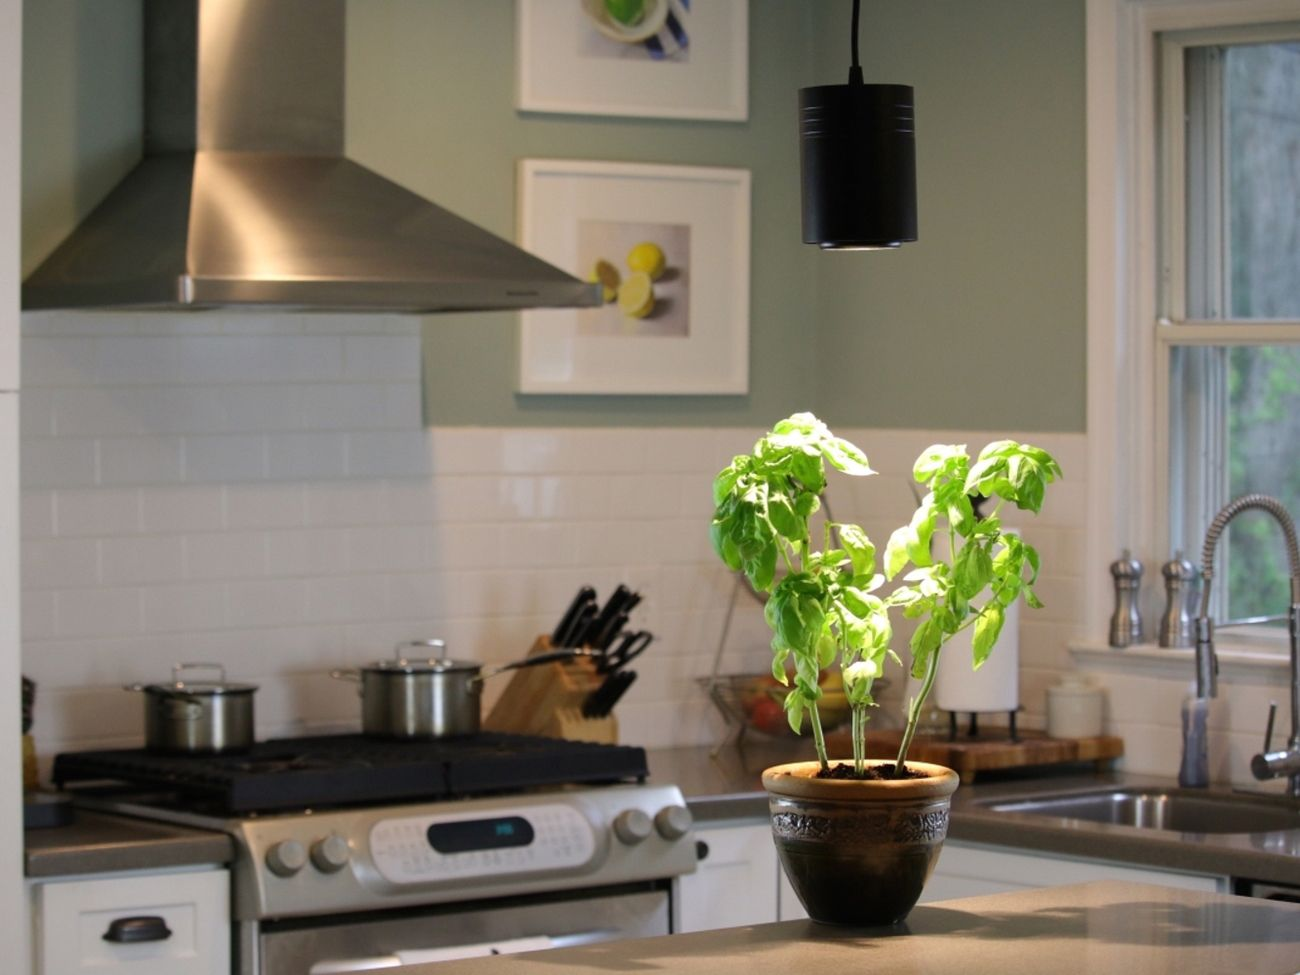 The Aspect – Reinventing the Grow Light for Interior Design